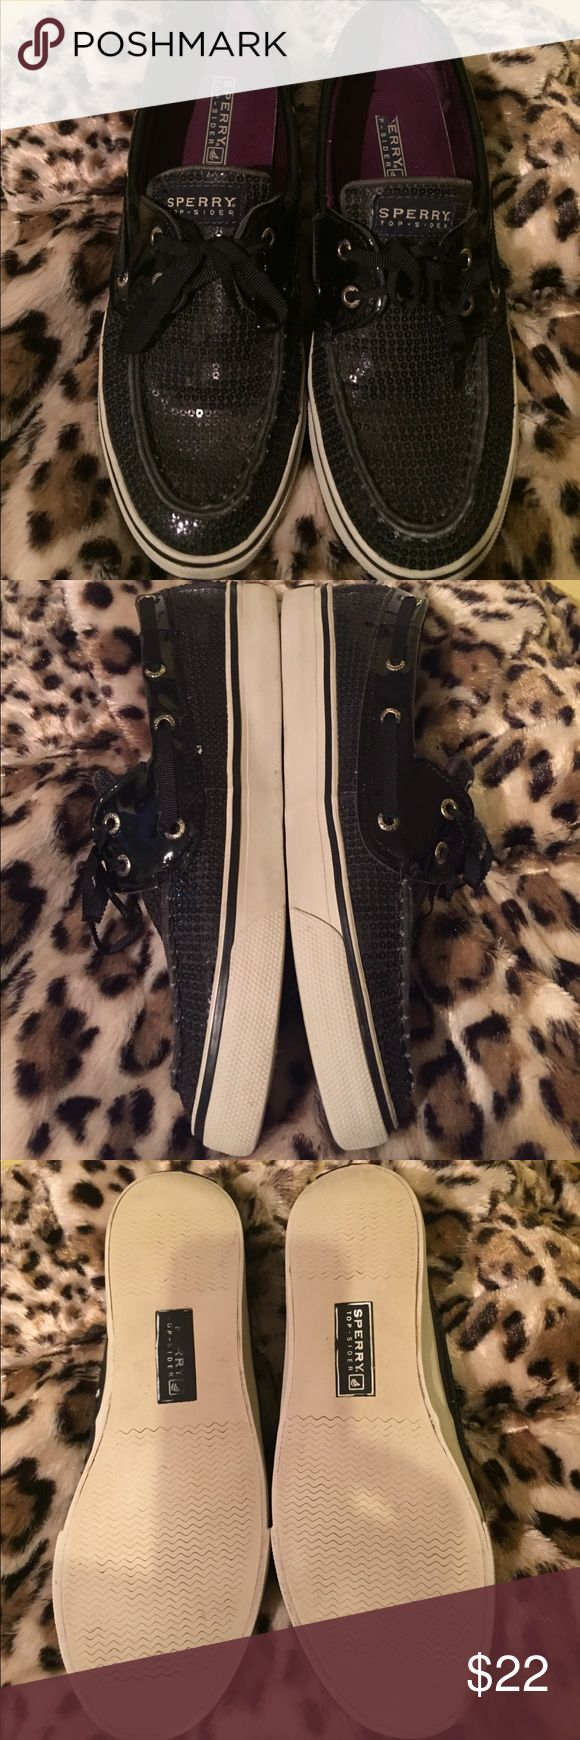 👁SPERRY TOP-SIDER👁 Has purple satin on the inside. Black sequins over the entire shoe. Twill ribbon as shoe strings which adds to the detail. These are pre-loved.... and more love ❤️ is ready to give away😍they are very clean, no odors. Just natural wear. Don't let this pass you bye ladies Sperry Top-Sider Shoes Flats & Loafers